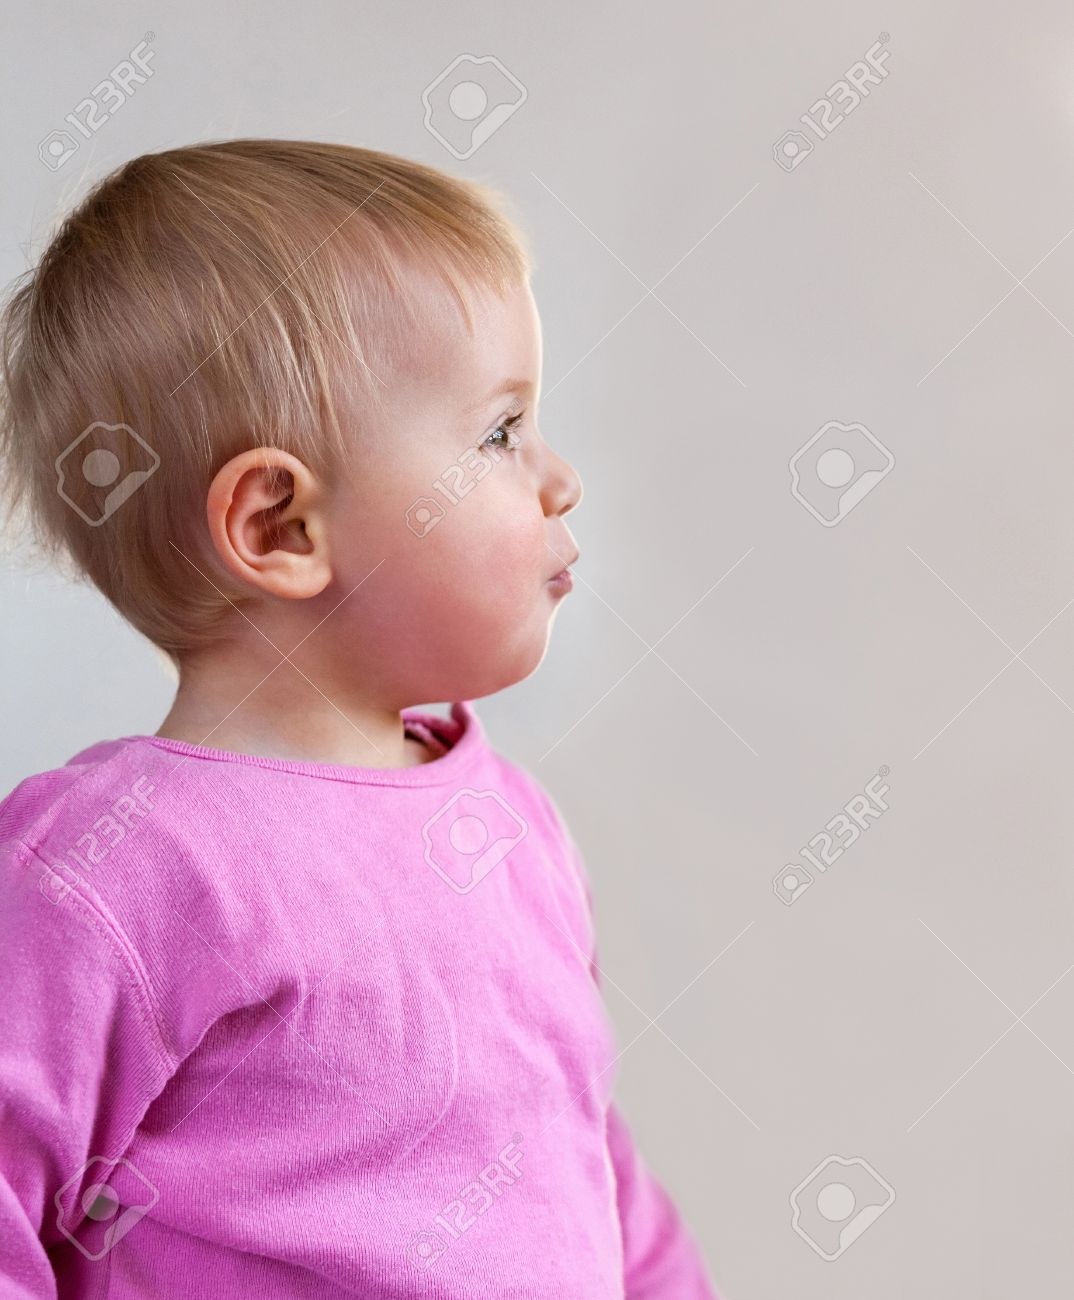 baby profile pictures